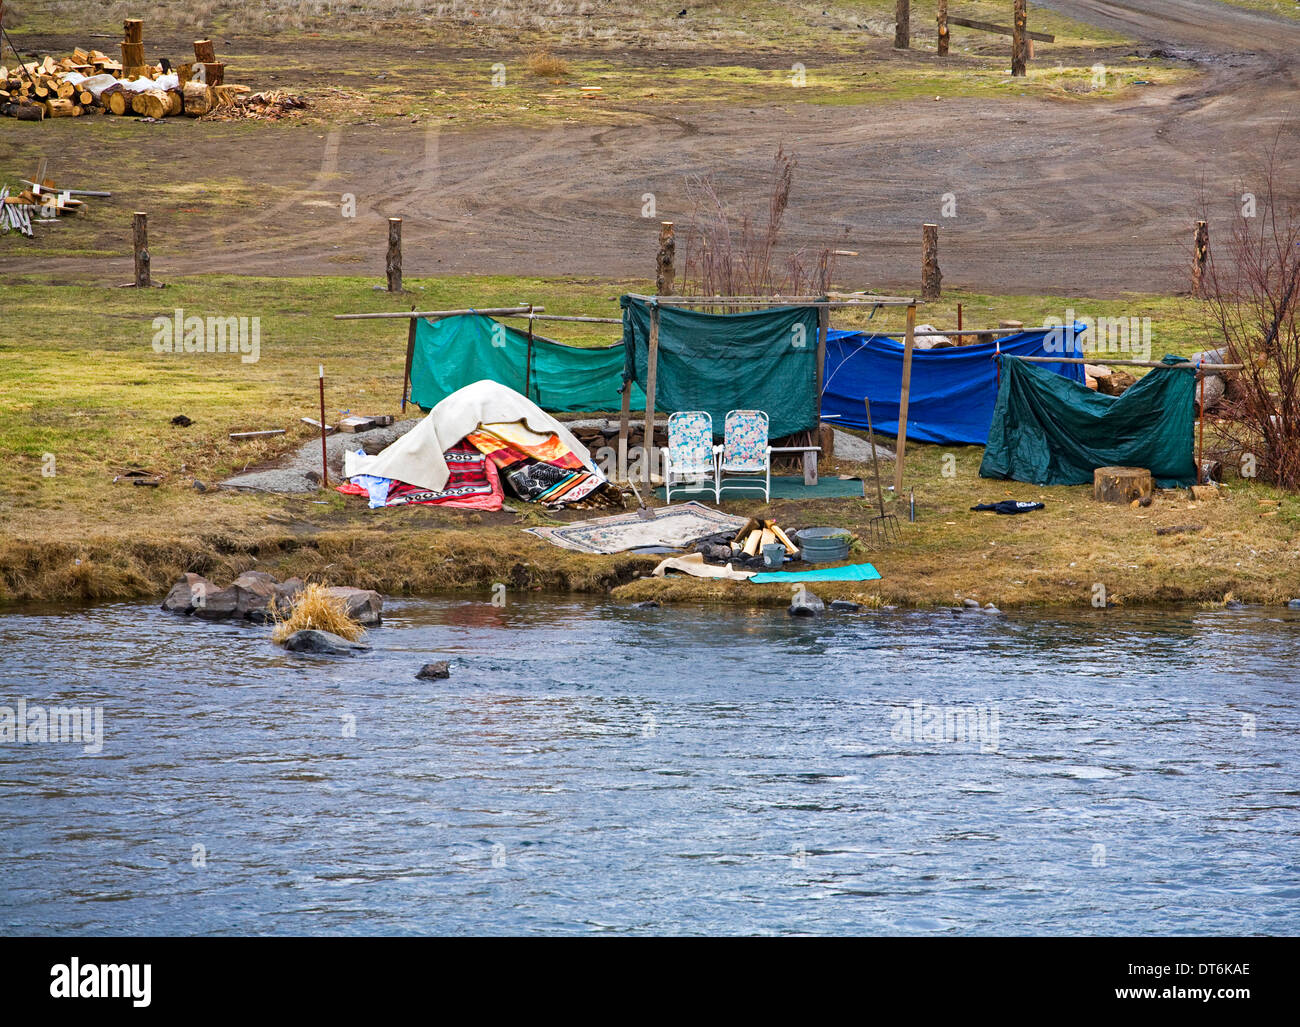 An Indian sweat lodge on the Warms Springs Indian Reservation on the banks of the Deschutes River, Oregon Stock Photo